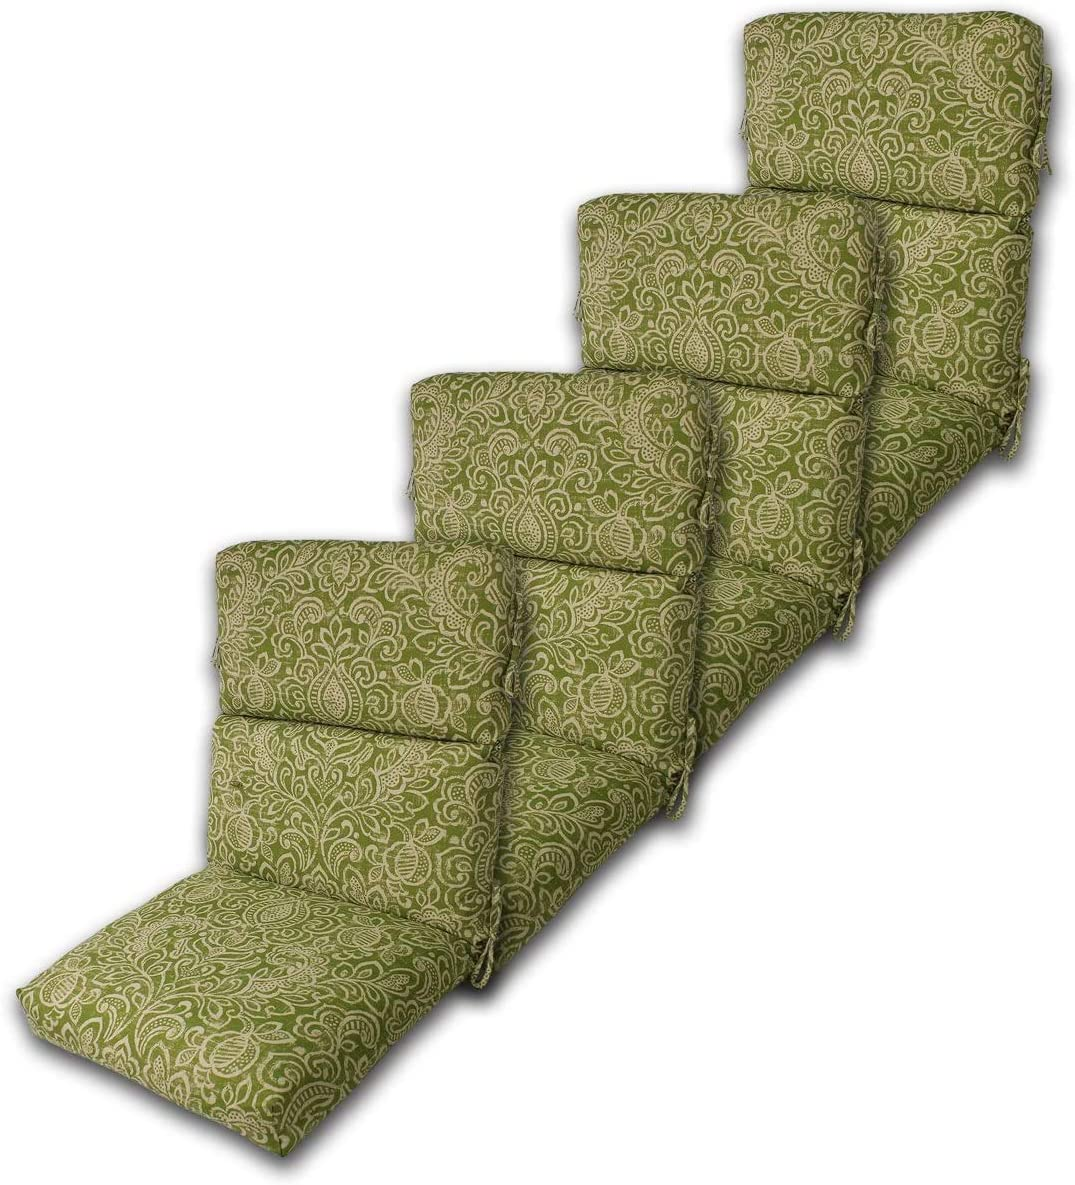 "Set of 4 Outdoor Chair Cushion 22"" W x 44"" L x 4.5"" H. Polyester Fabric Green Stencil by Comfort Classics Inc."